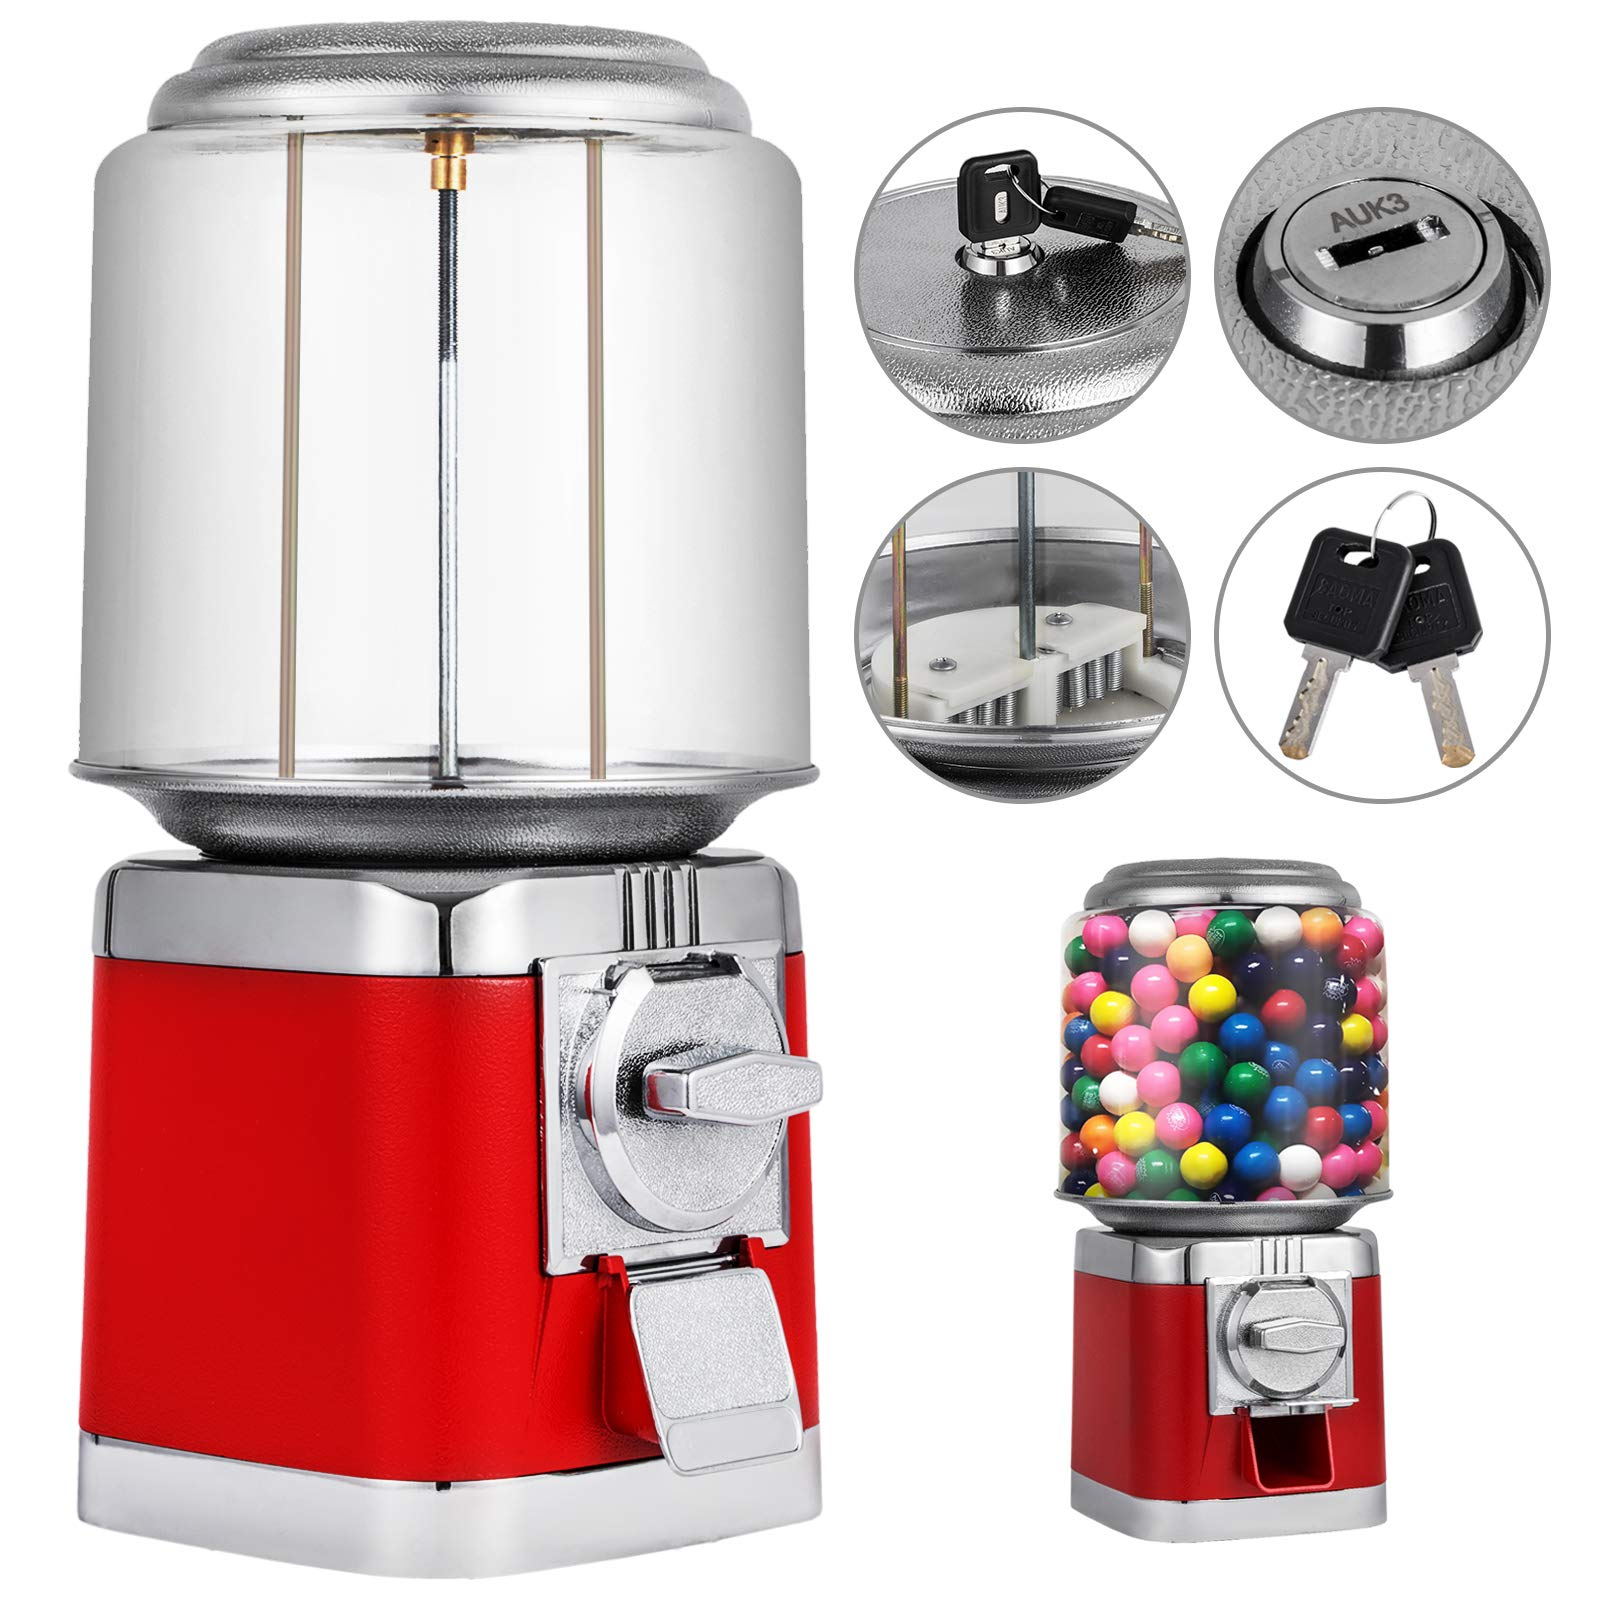 Mophorn Gumball Candy Vending Machine Durable Metal Body Removable Canisters Capsule Bouncy Ball Gumball Vending Dispenser Machine by Mophorn